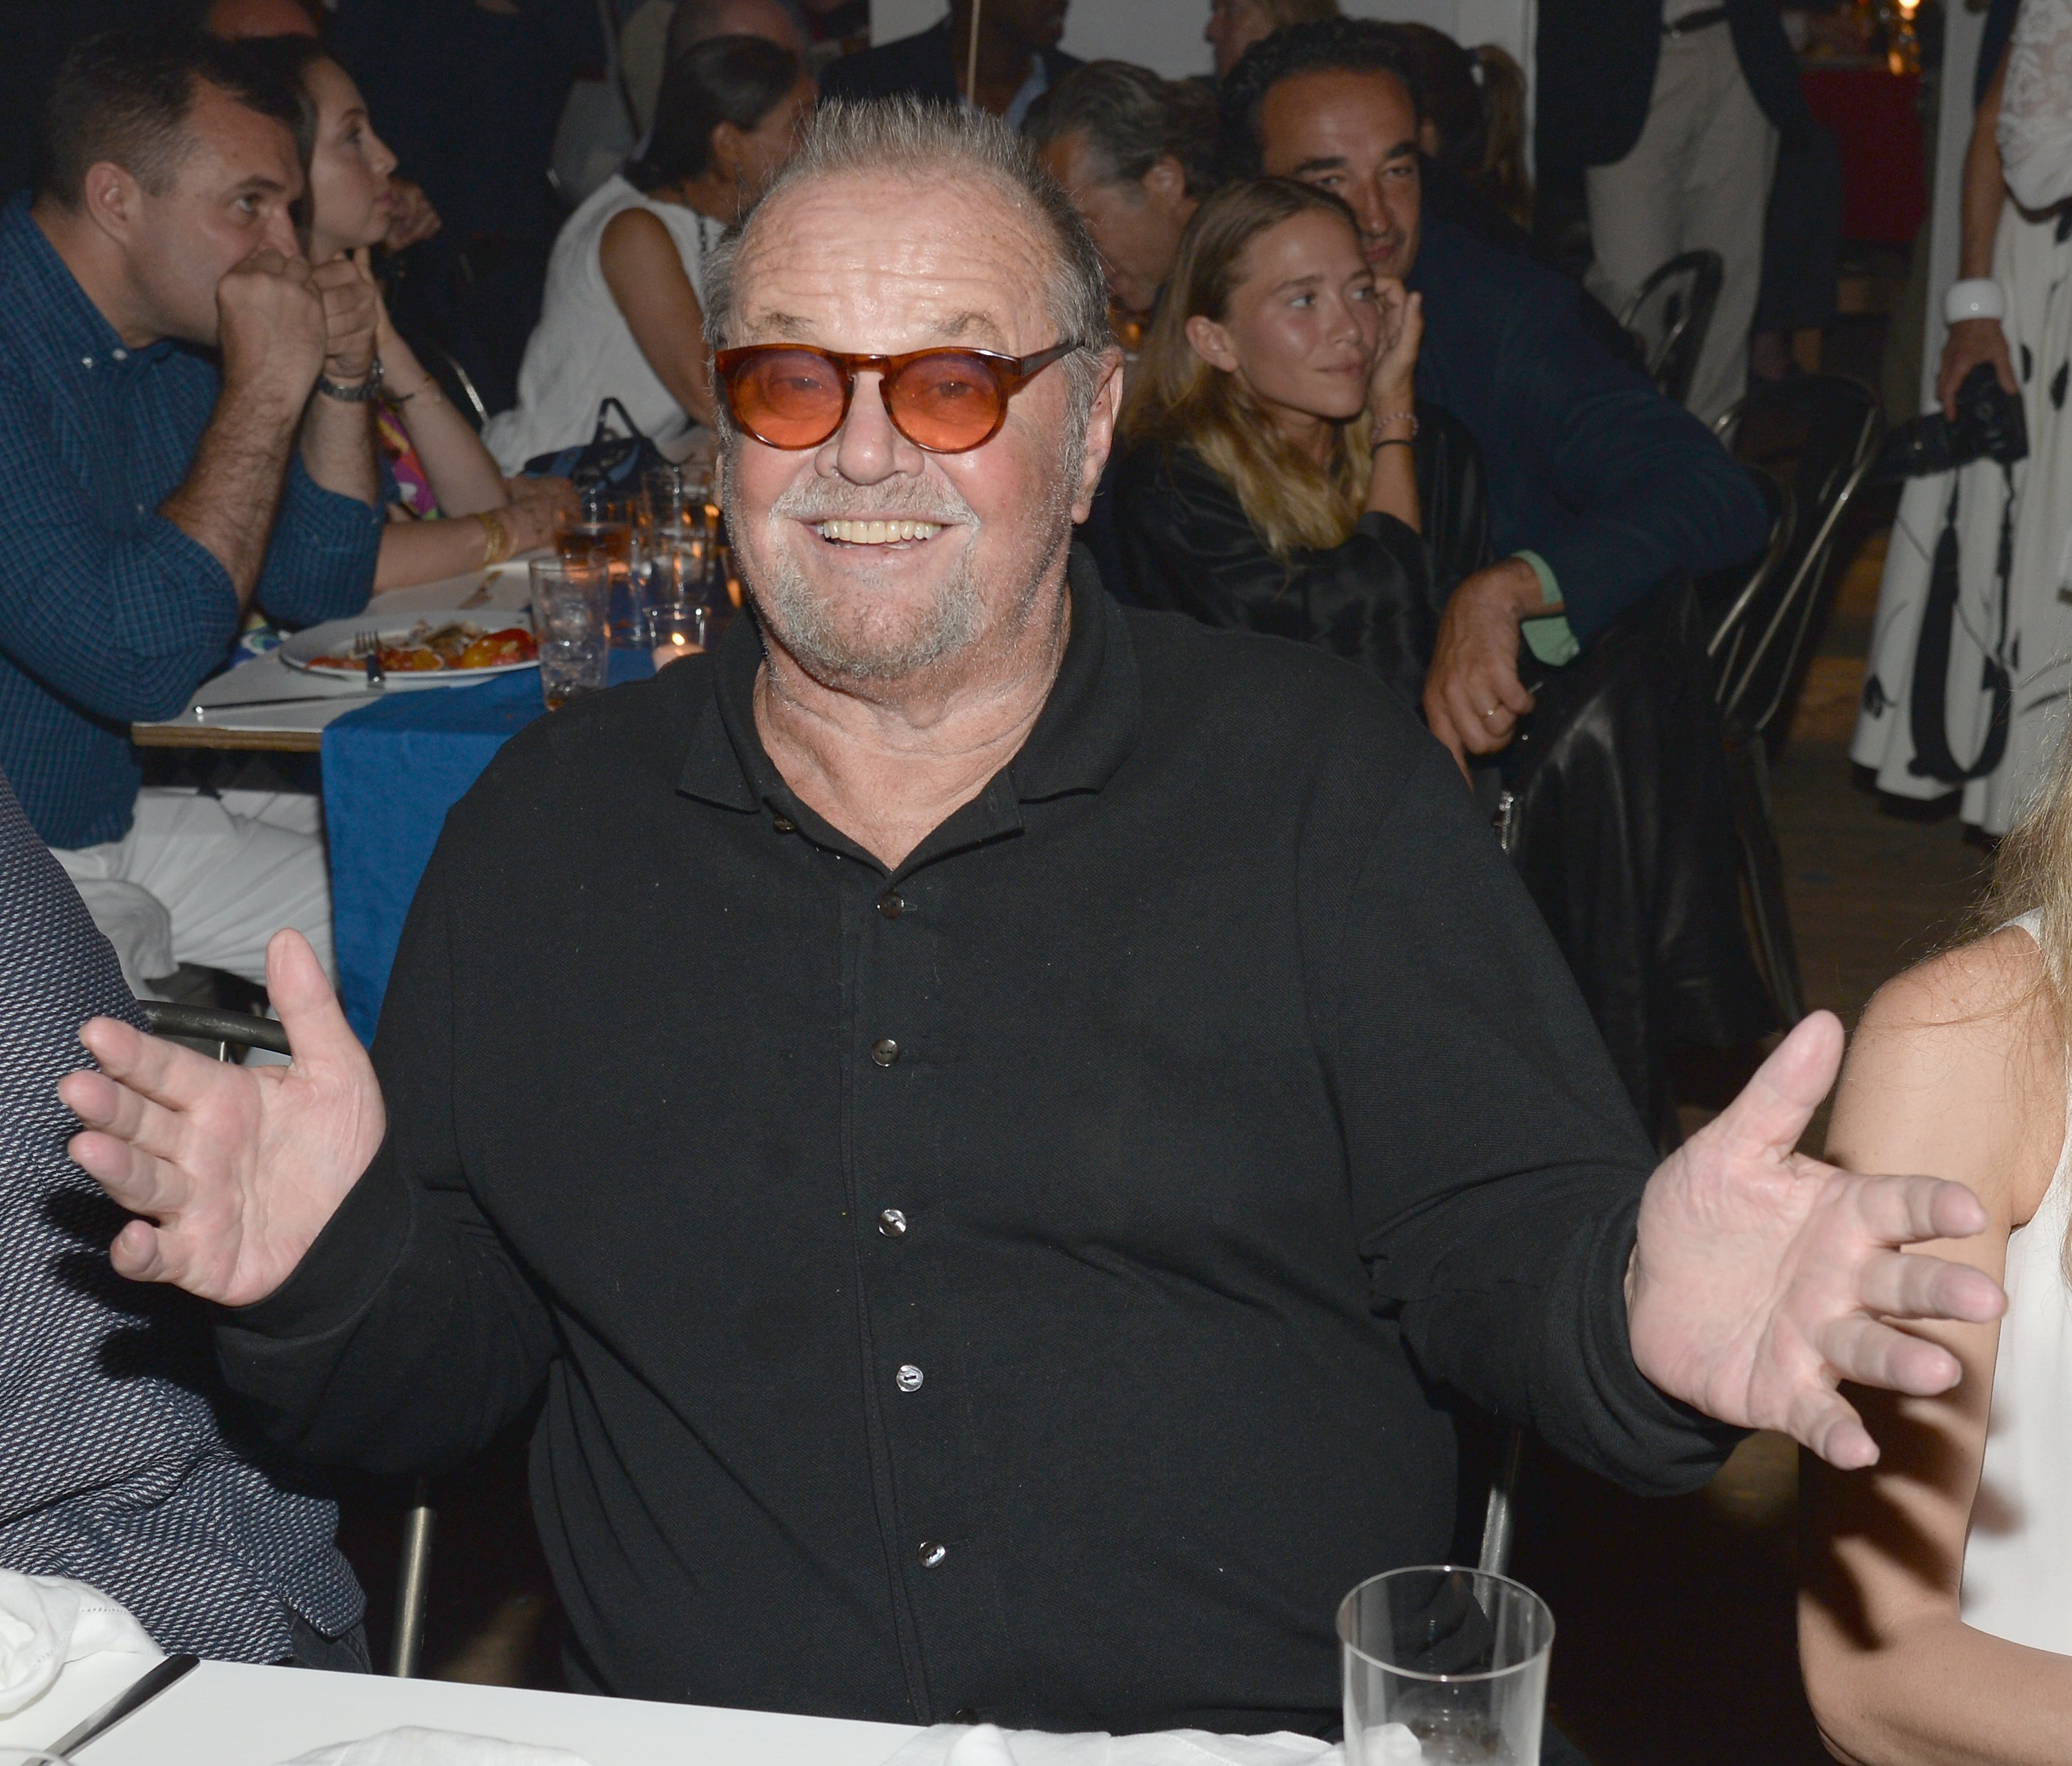 Jack Nicholson attends Apollo in the Hamptons 2015 at The Creeks on August 15, 2015, in East Hampton, New York. | Source: Getty Images.